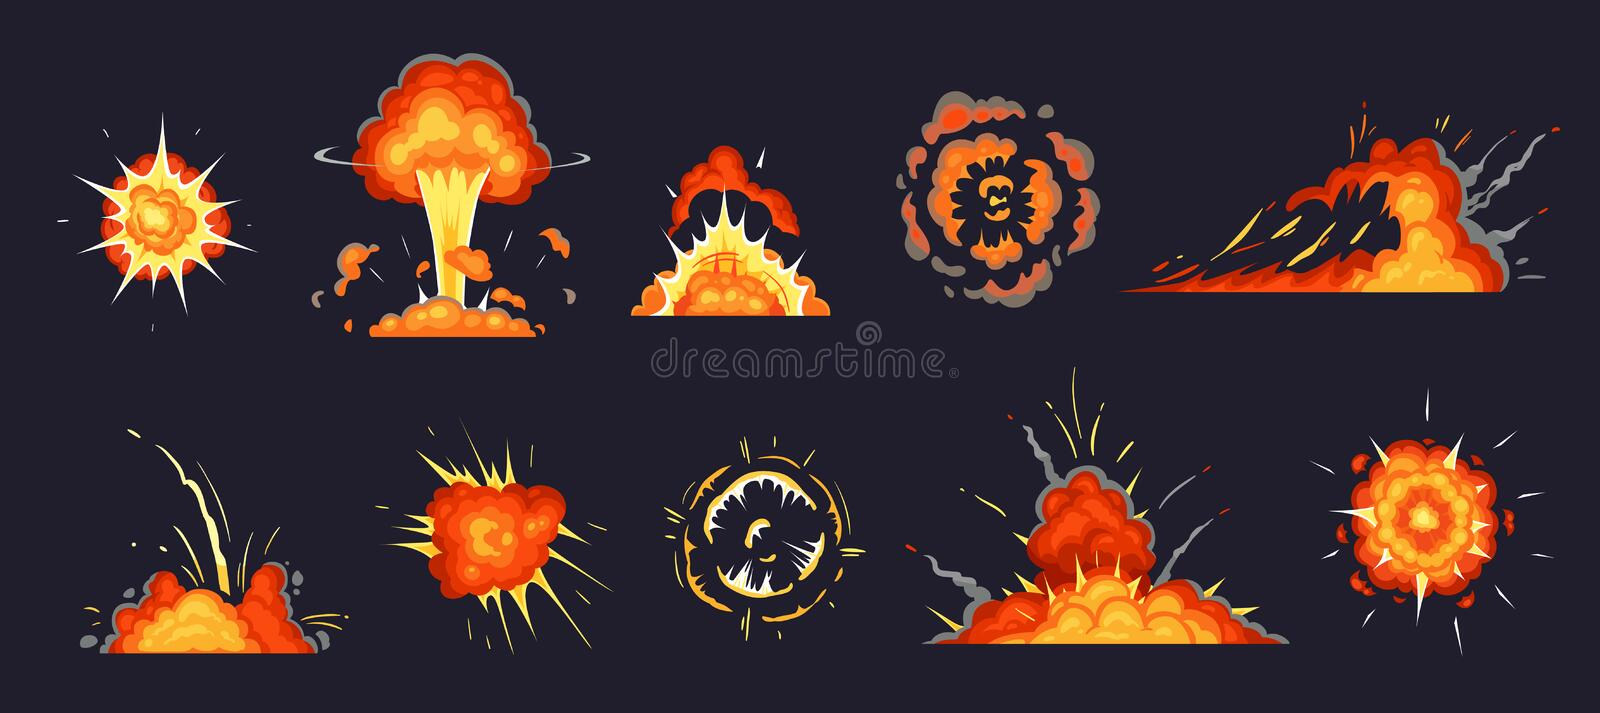 Cartoon explosion. Exploding bomb, atomic explode effect and comic explosions smoke clouds vector illustration set royalty free illustration